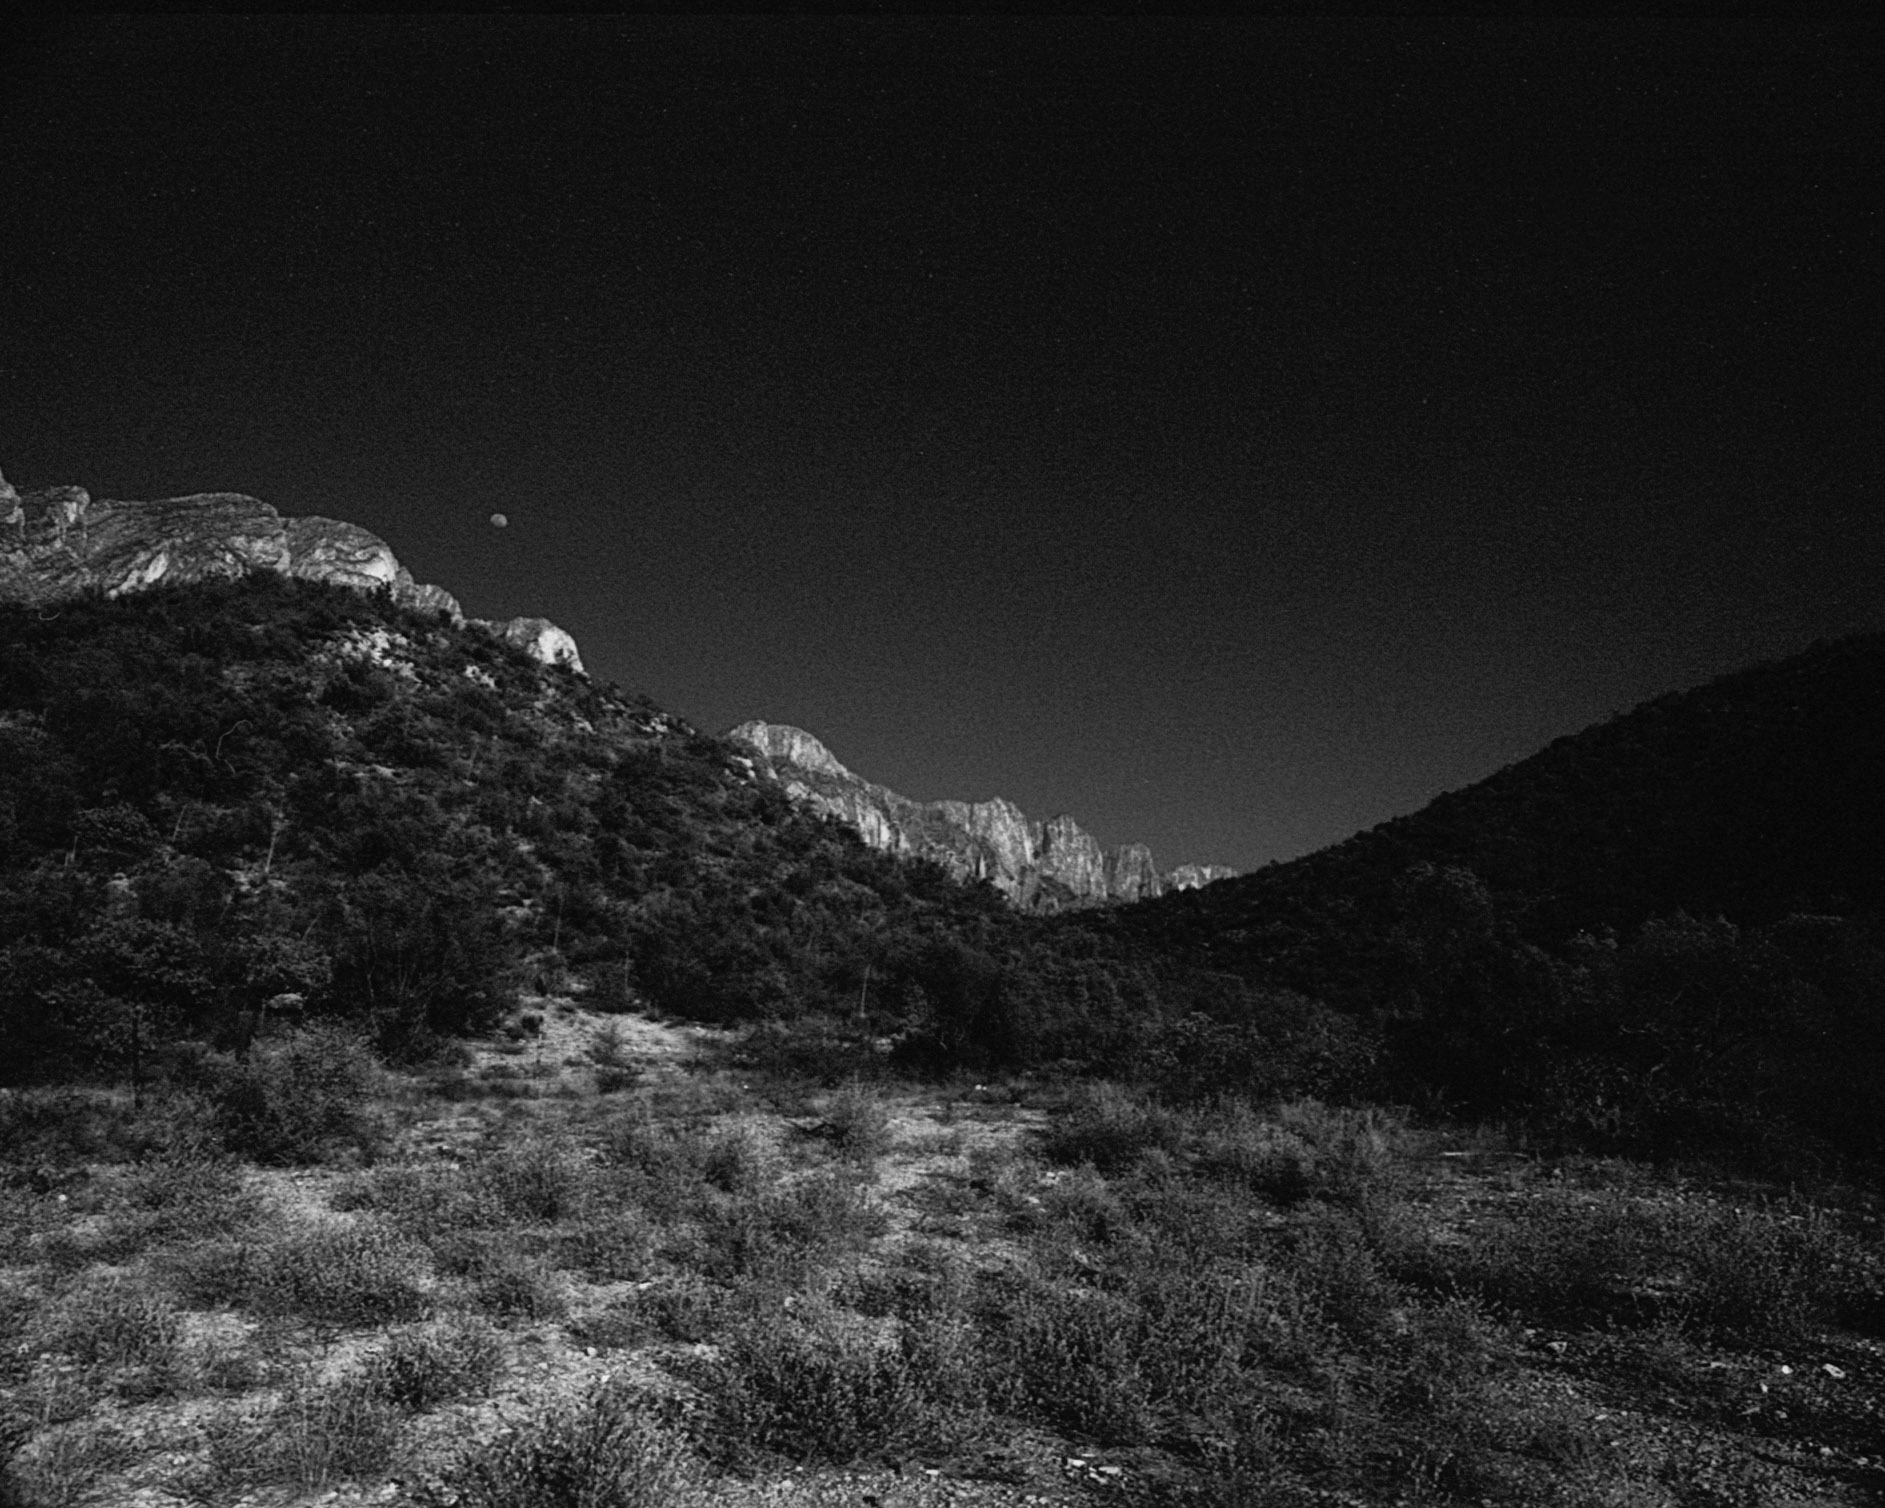 On the other side of the mountain | Minolta srt | Acros | Efrain Bojorquez